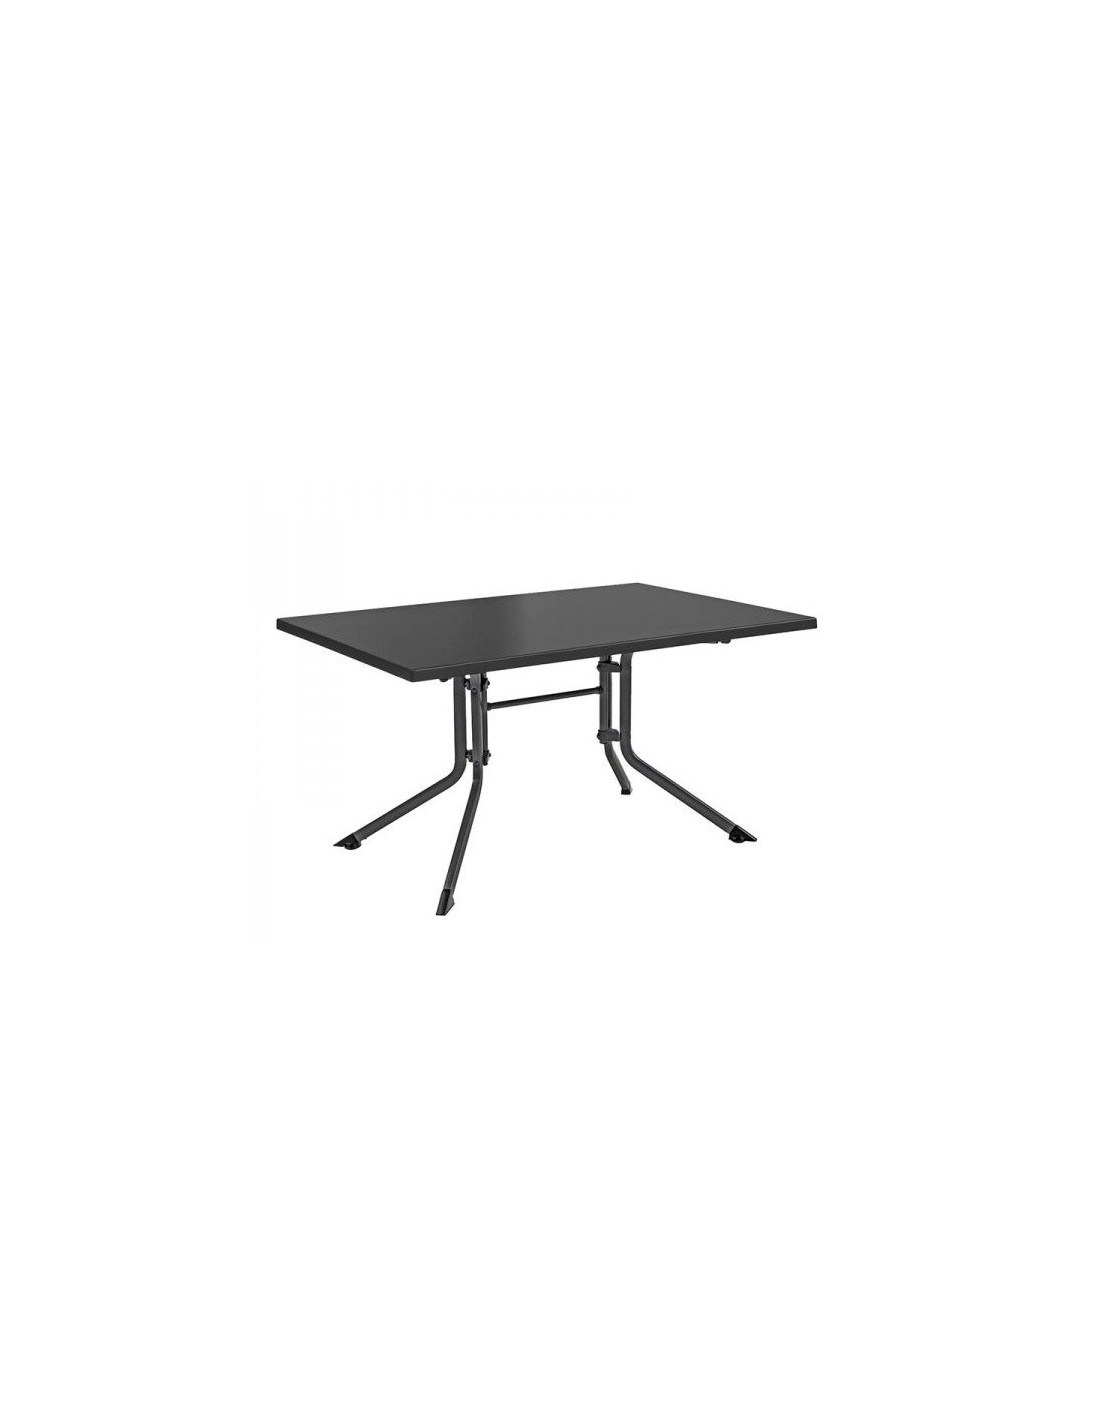 Table de jardin pliante carr e en aluminium mod le advantage - Table de jardin carree aluminium ...